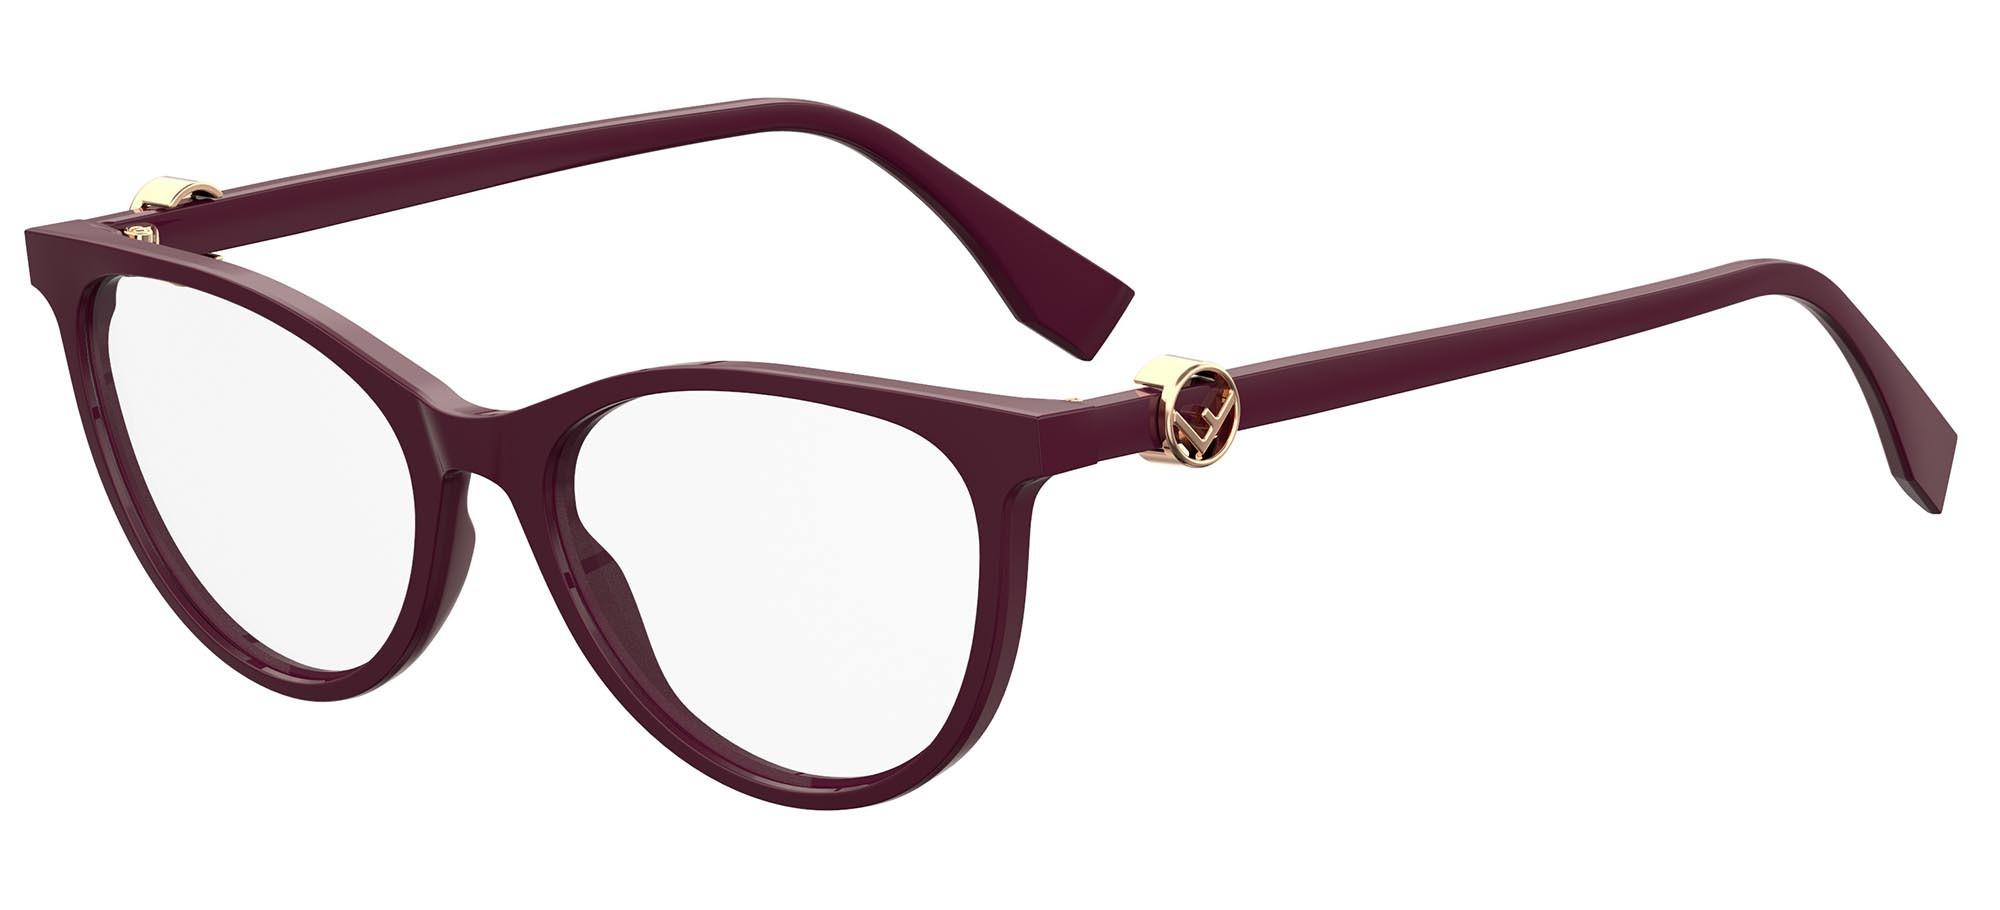 Fendi eyeglasses F IS FENDI FF 0332